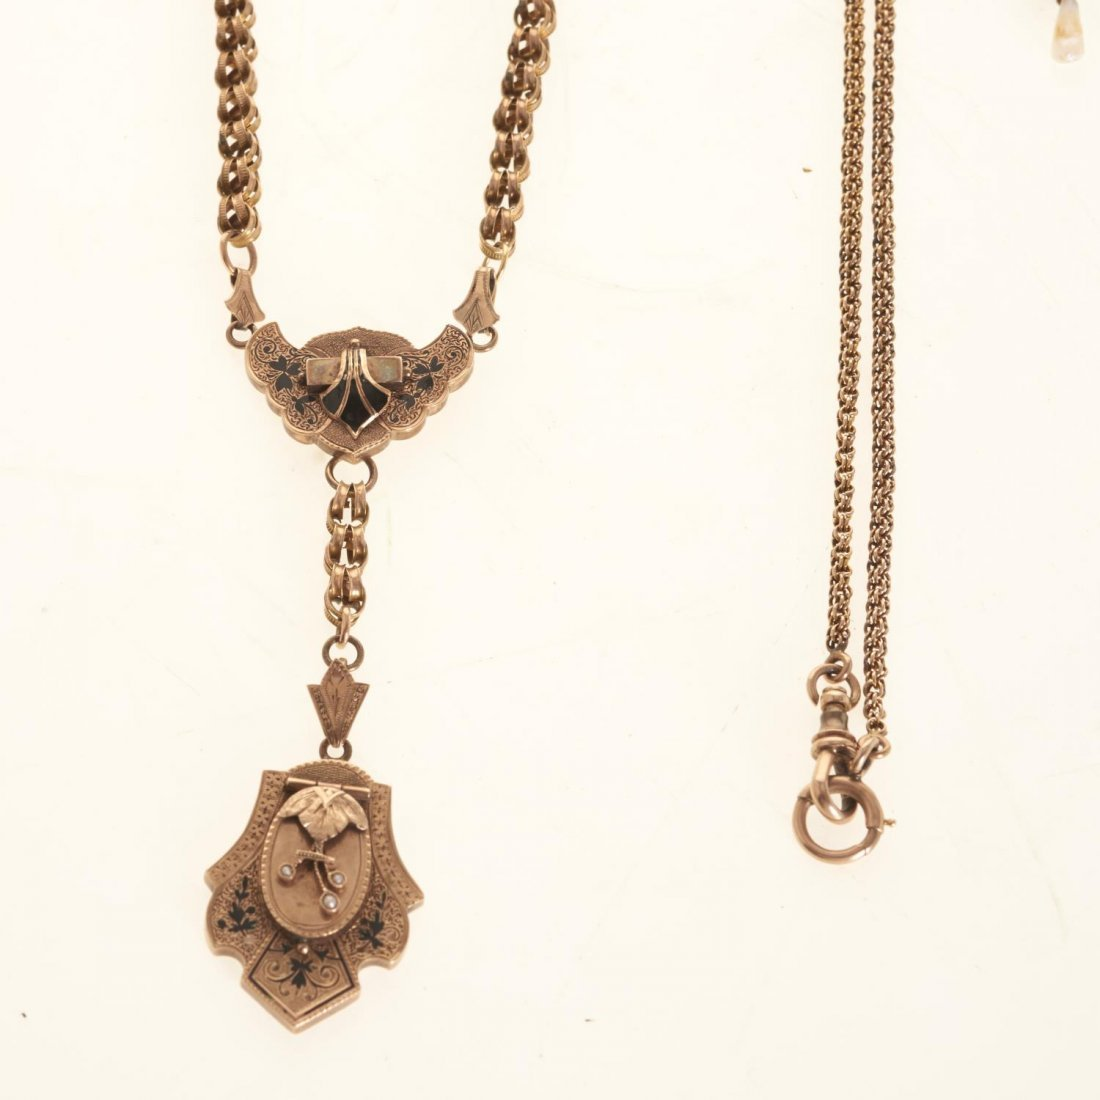 Victorian style gold jewelry - 2